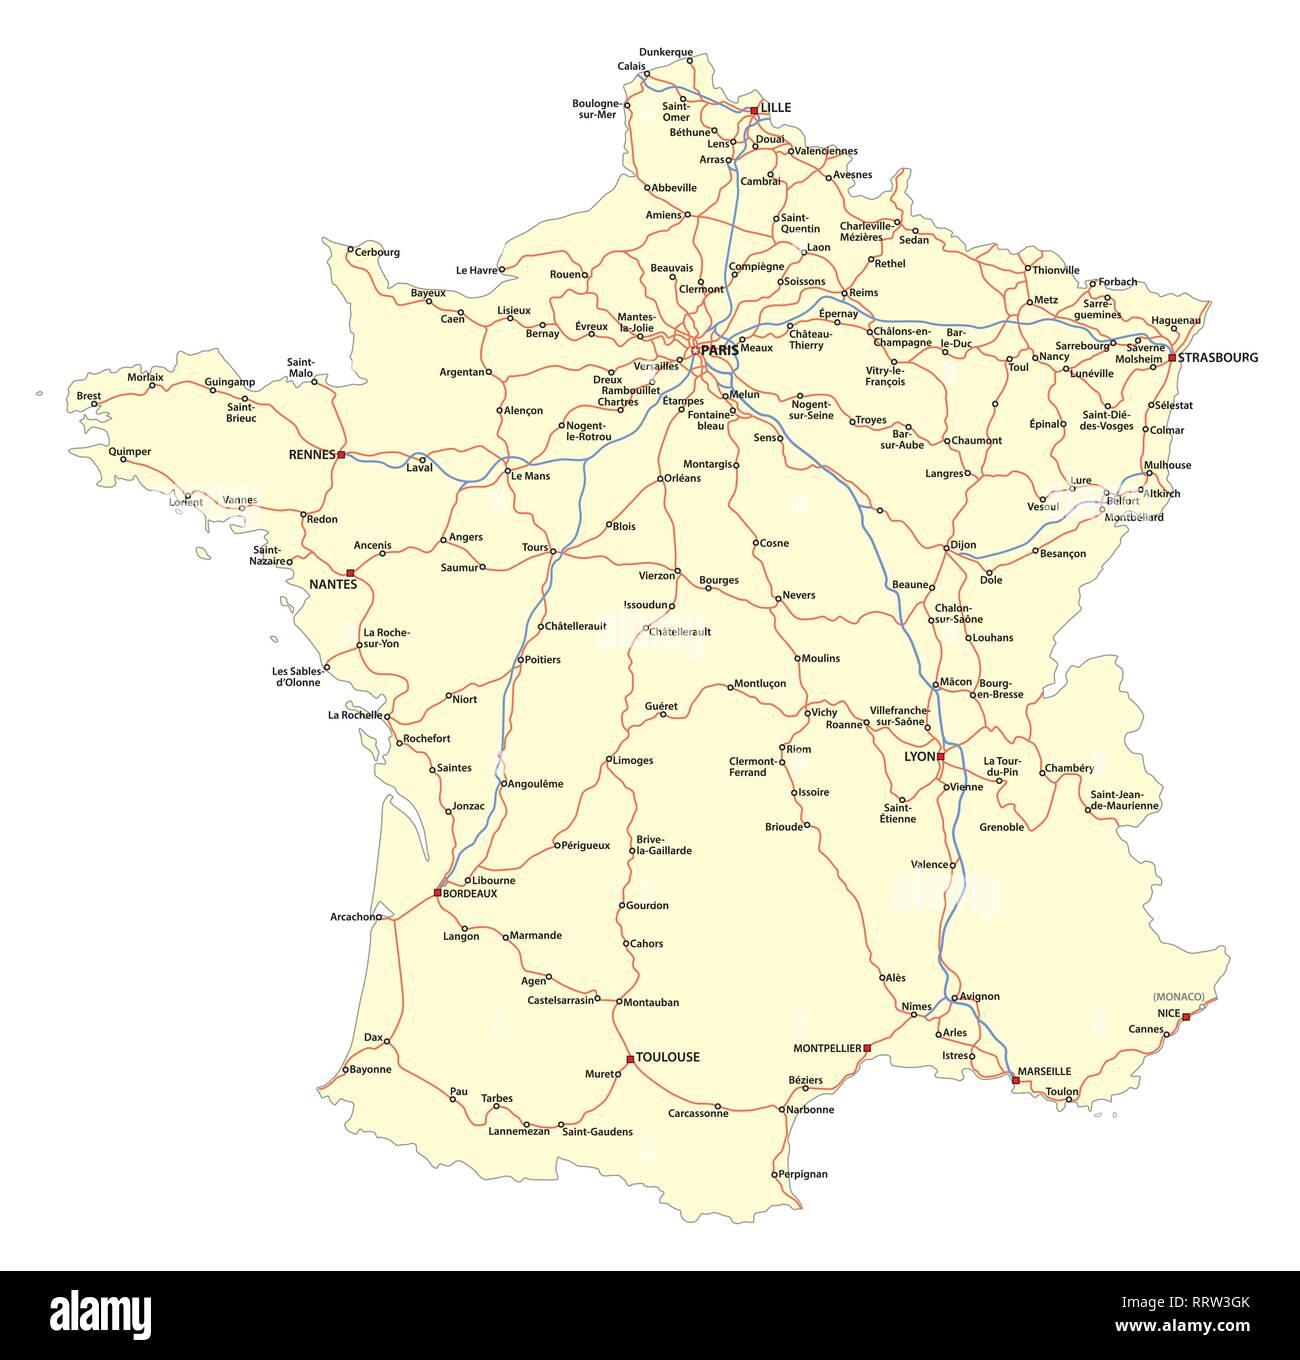 Map of the main roads of the French railway network - Stock Image